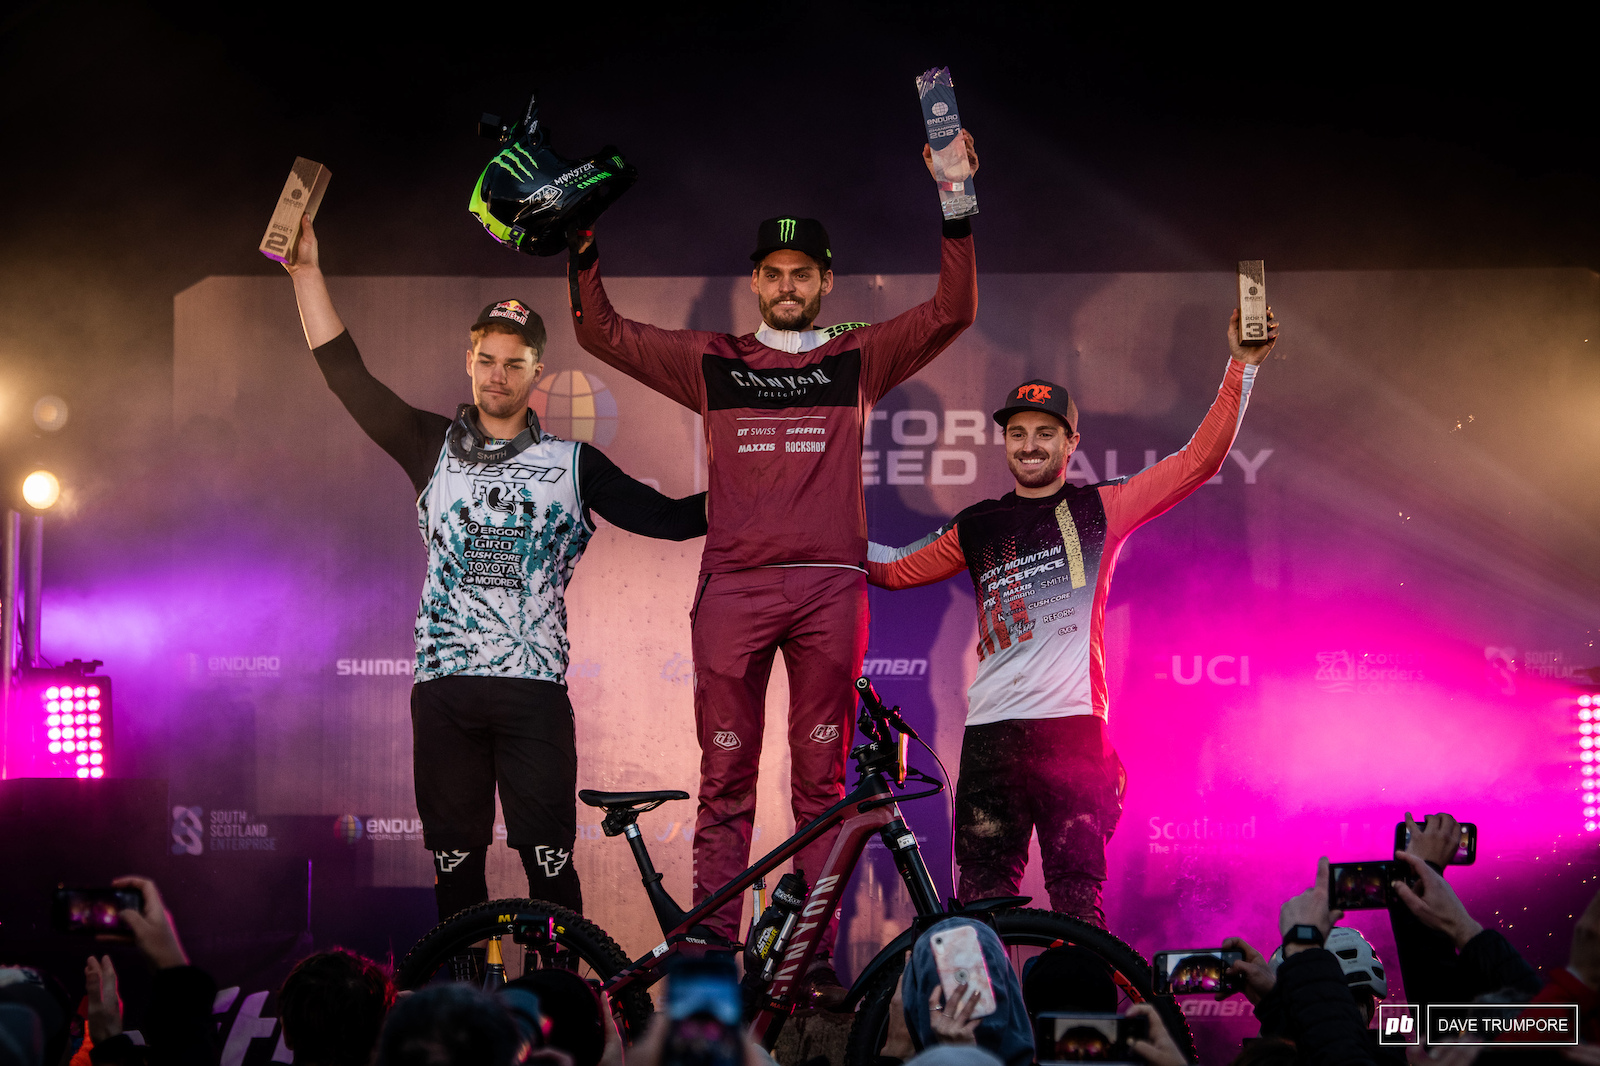 Jack Moir is the new EWS Champion followed by Richie Rude and Jesse Melamed